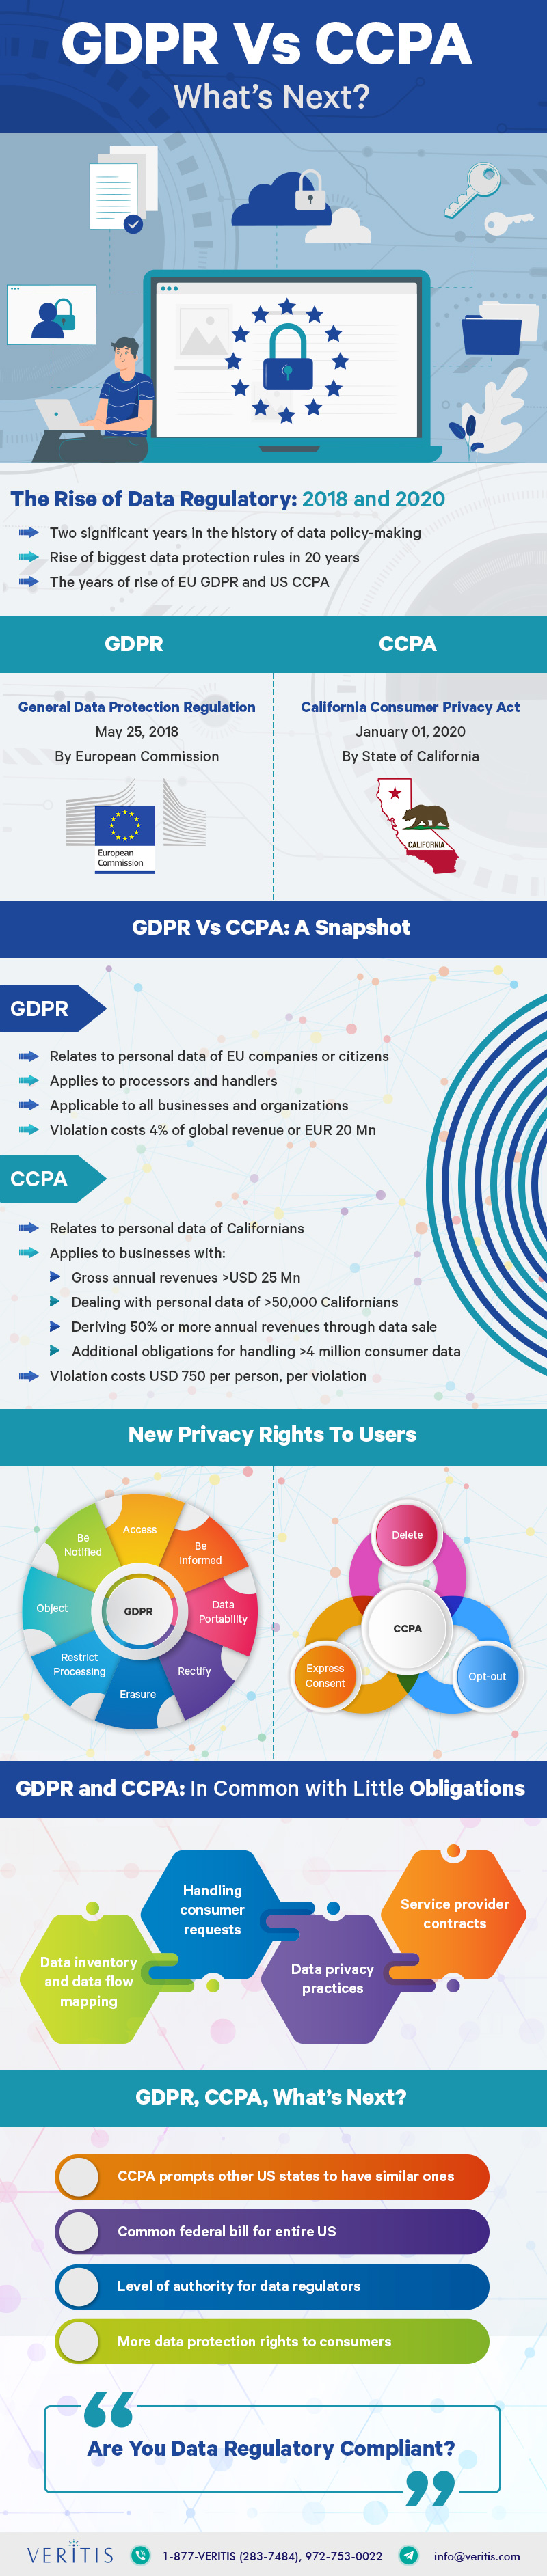 Data Regulatory: GDPR Vs CCPA, What's Next? #infographic